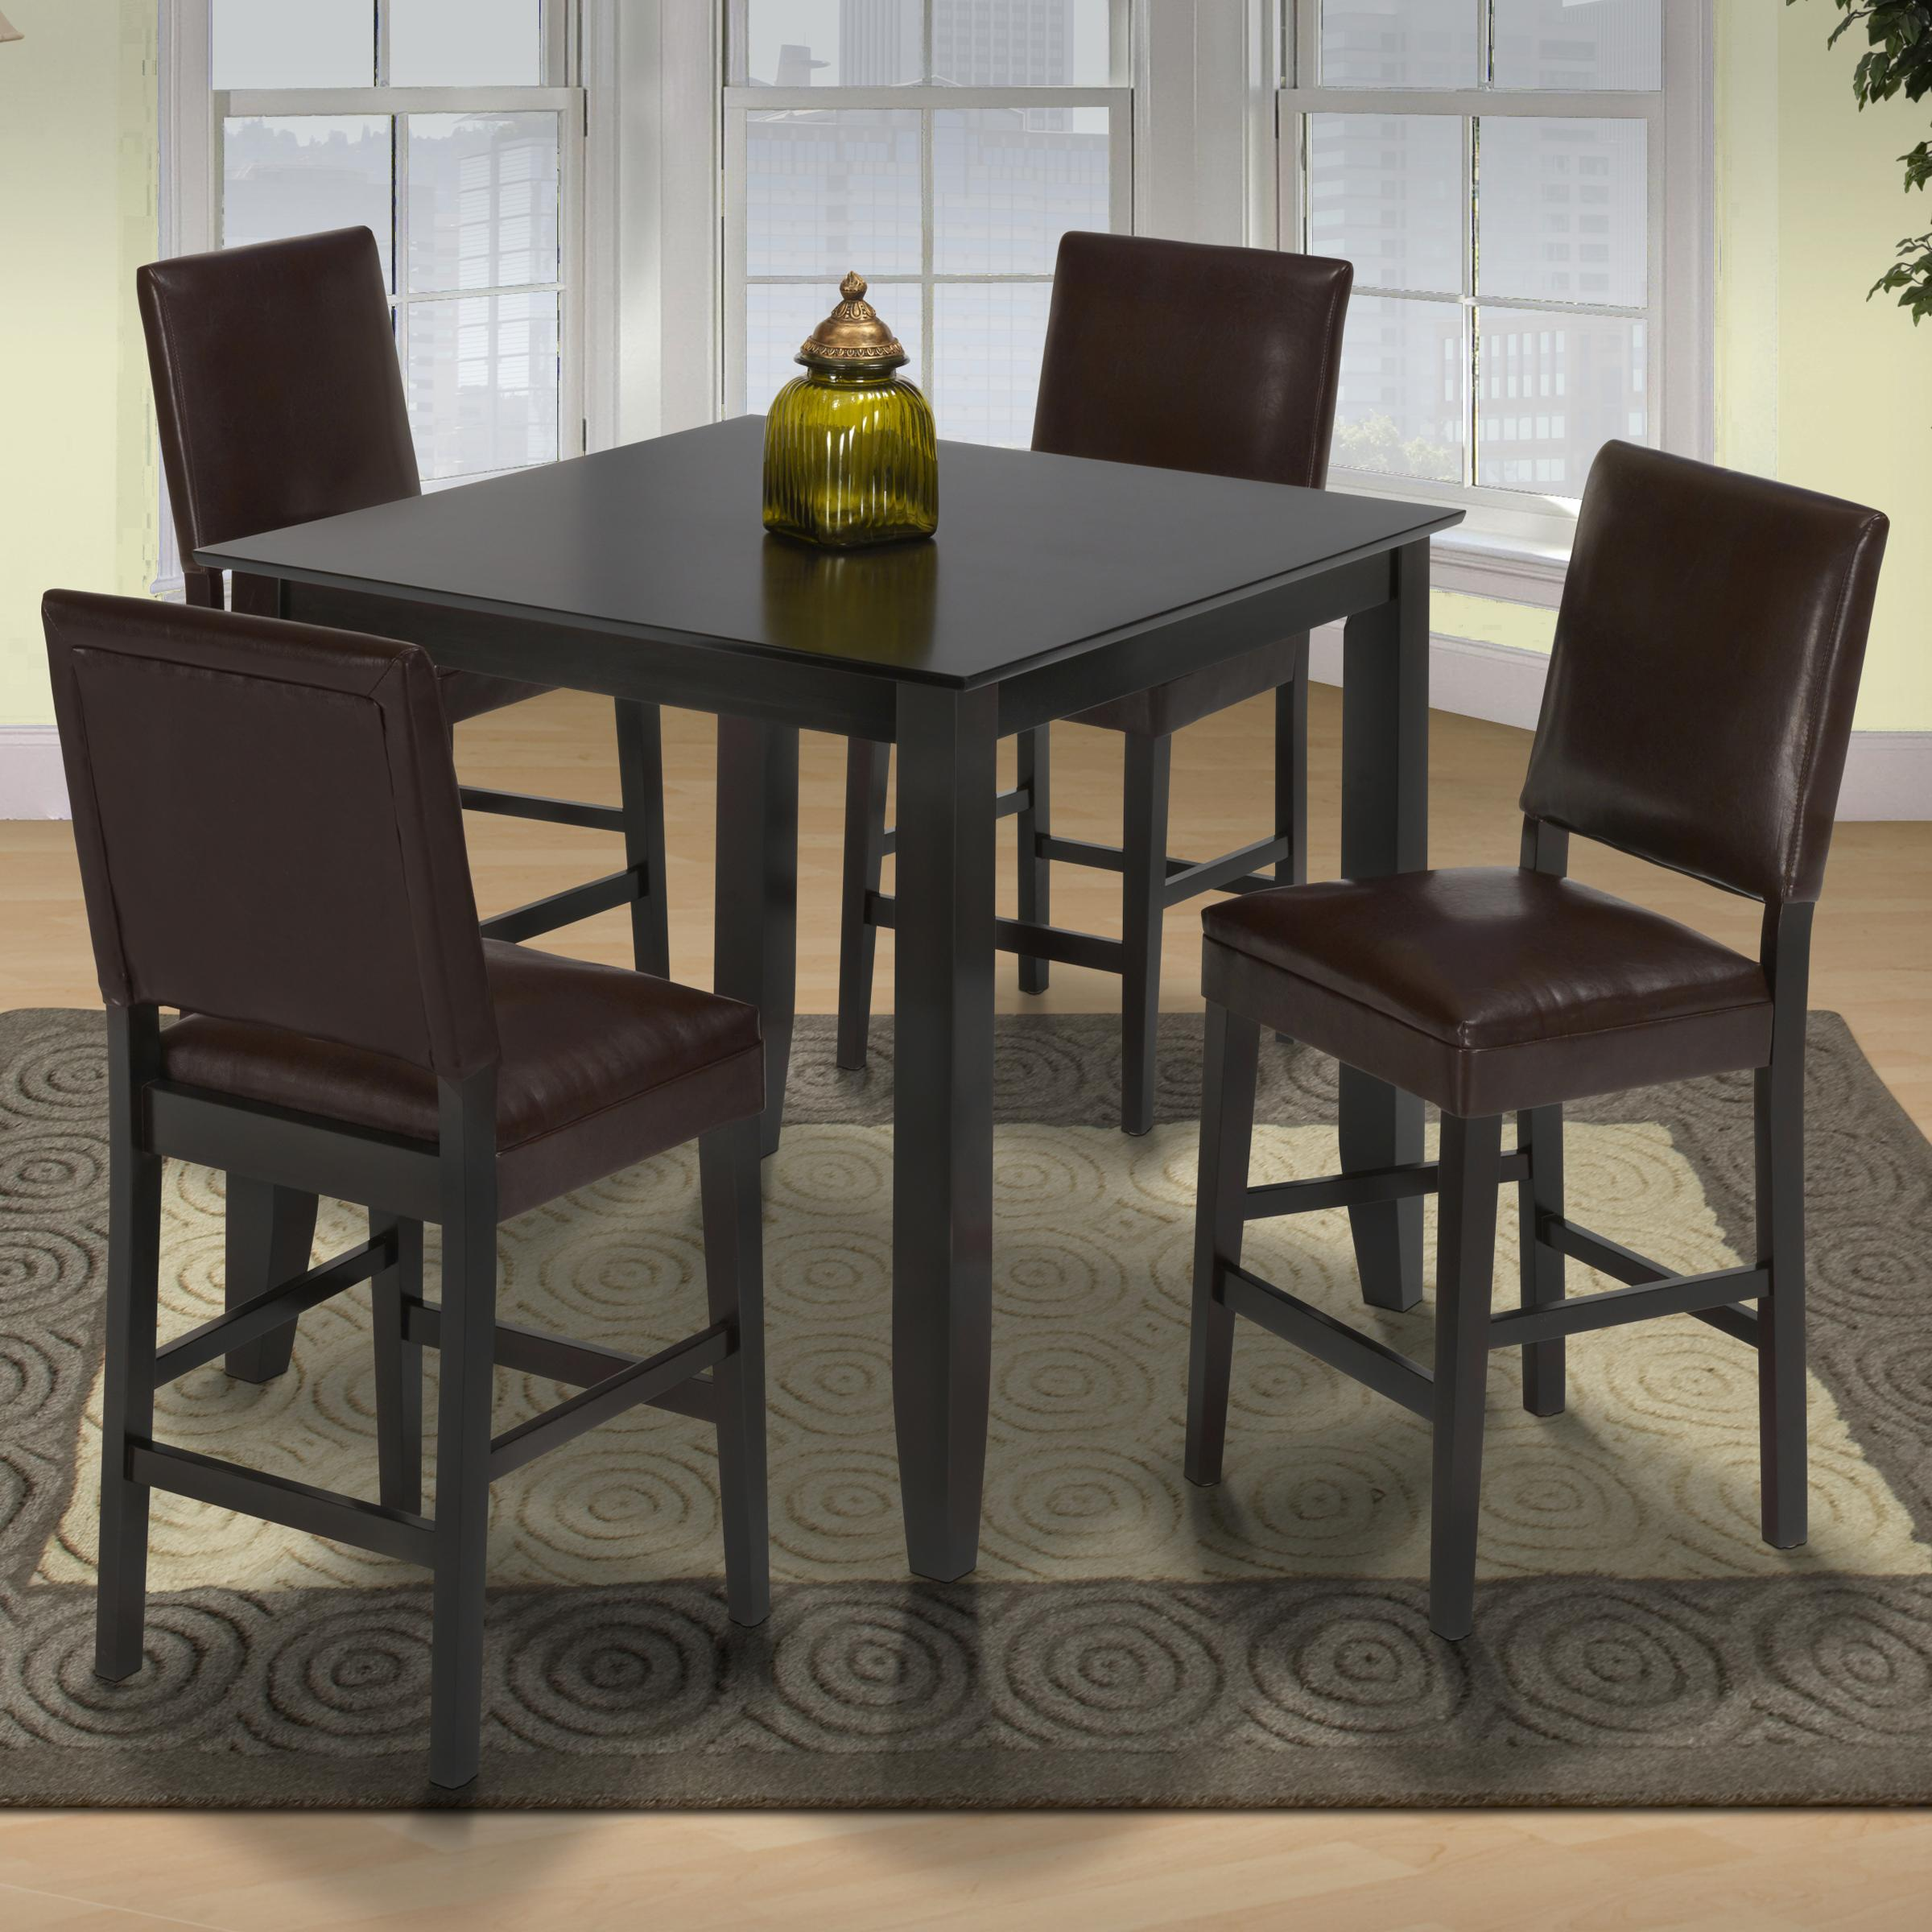 Pub Tables And Chairs New Classic Style 19 Small Pub Table And Upholstered